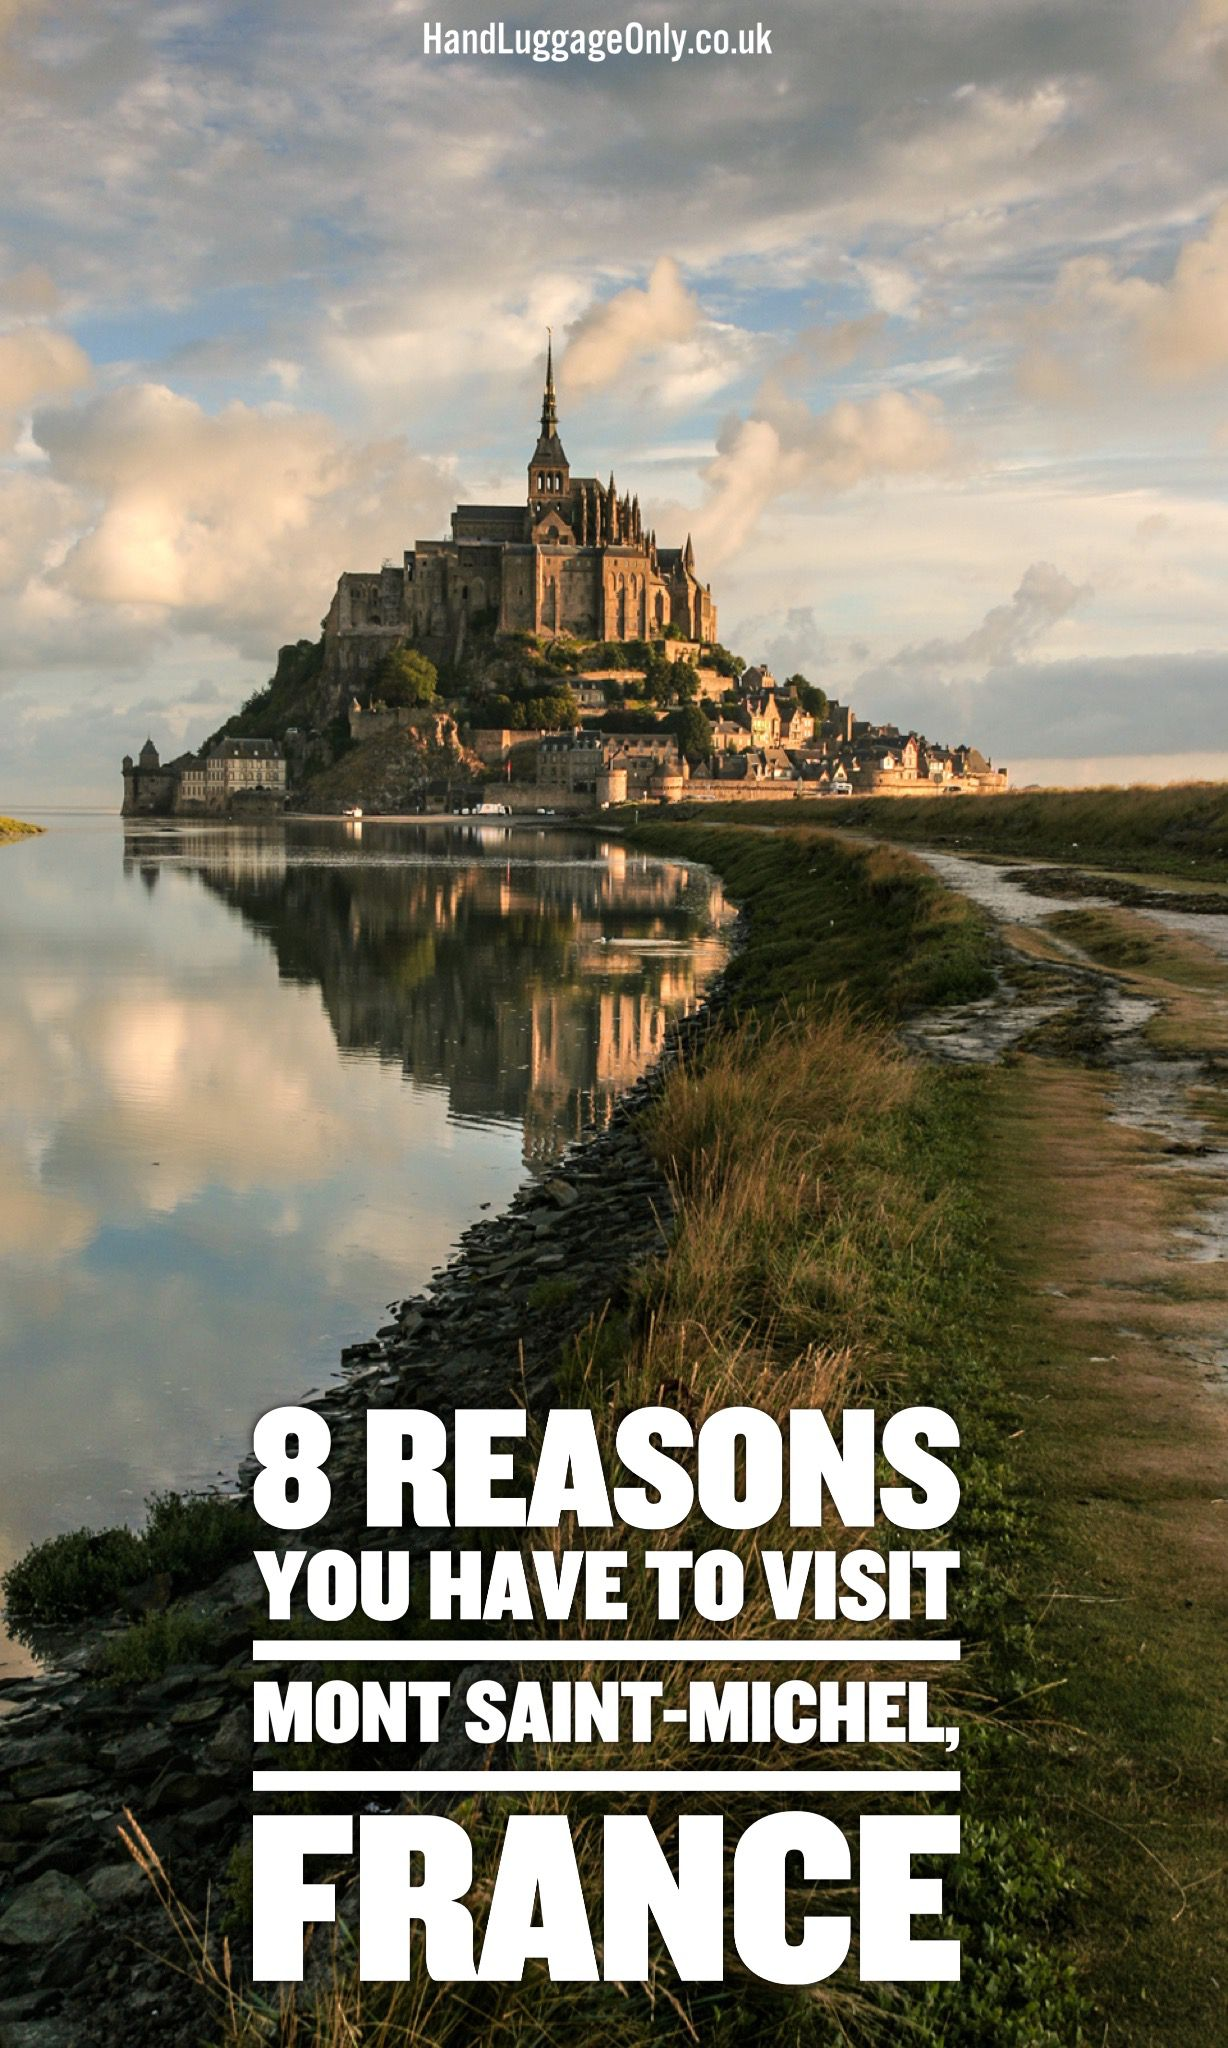 8 Reasons You Have To Visit Mont Saint-Michel in France!